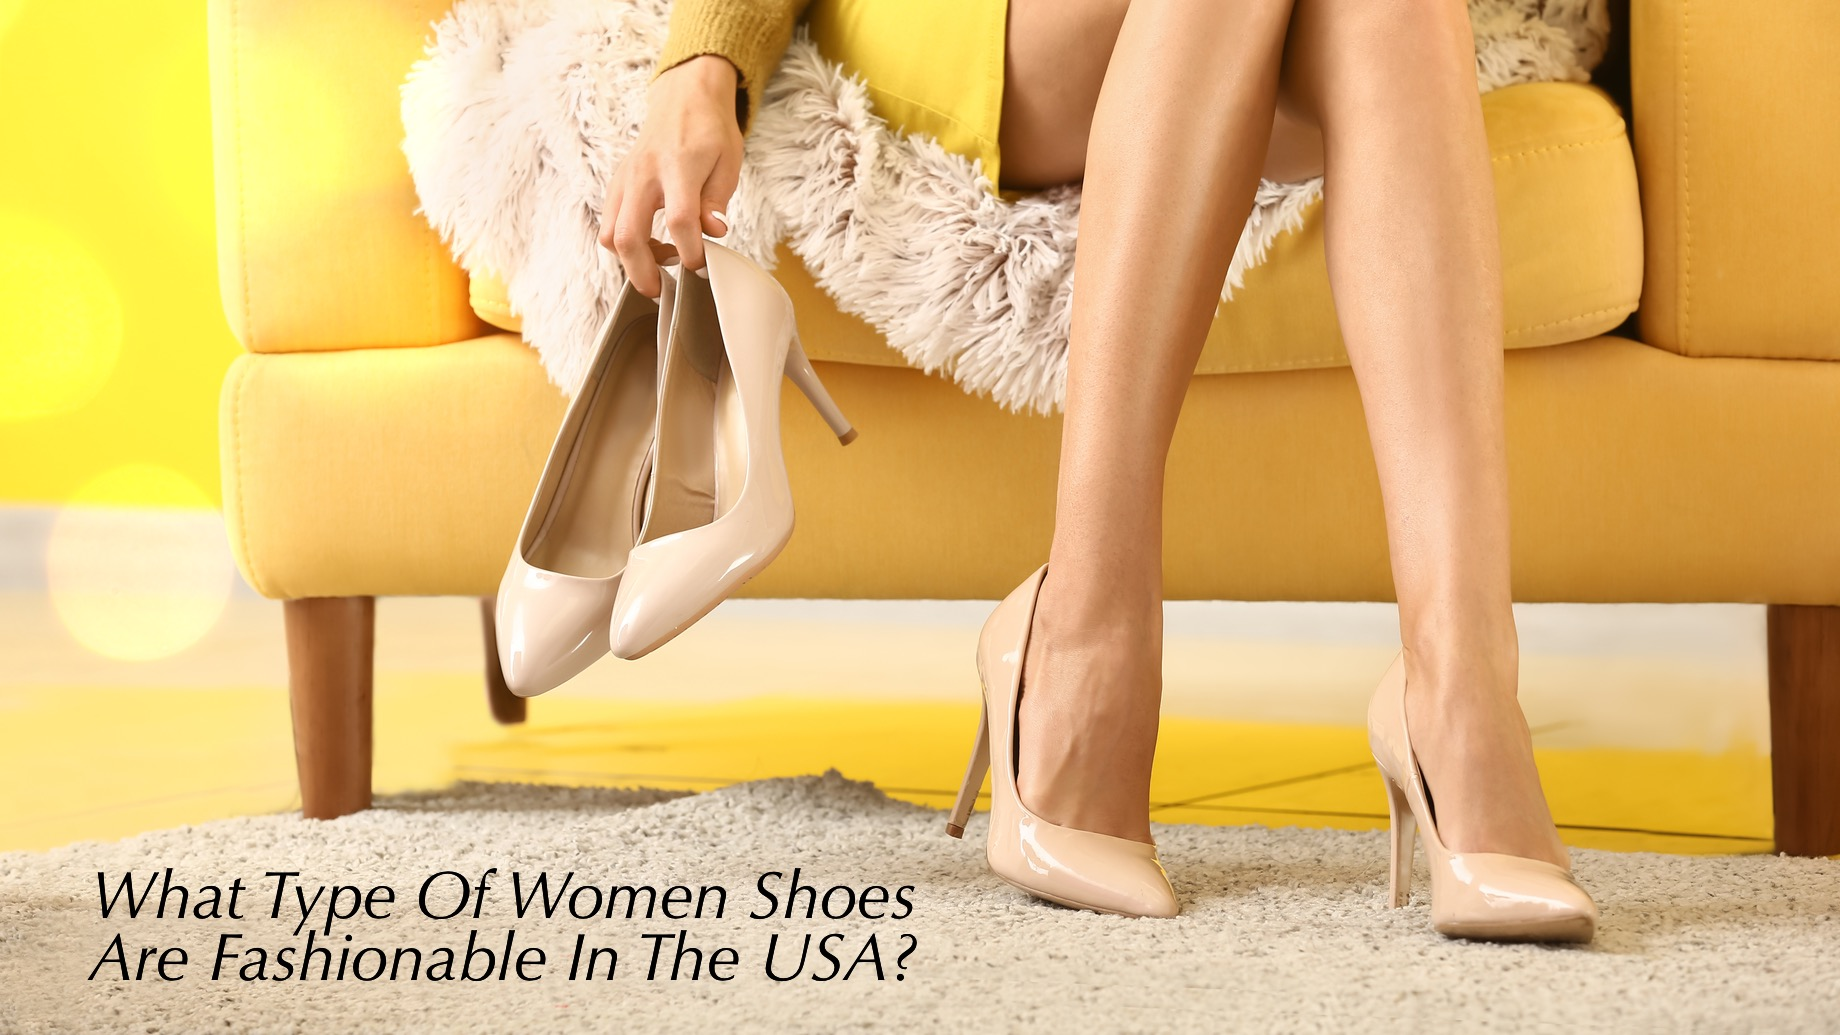 What Type Of Women Shoes Are Fashionable In The USA?